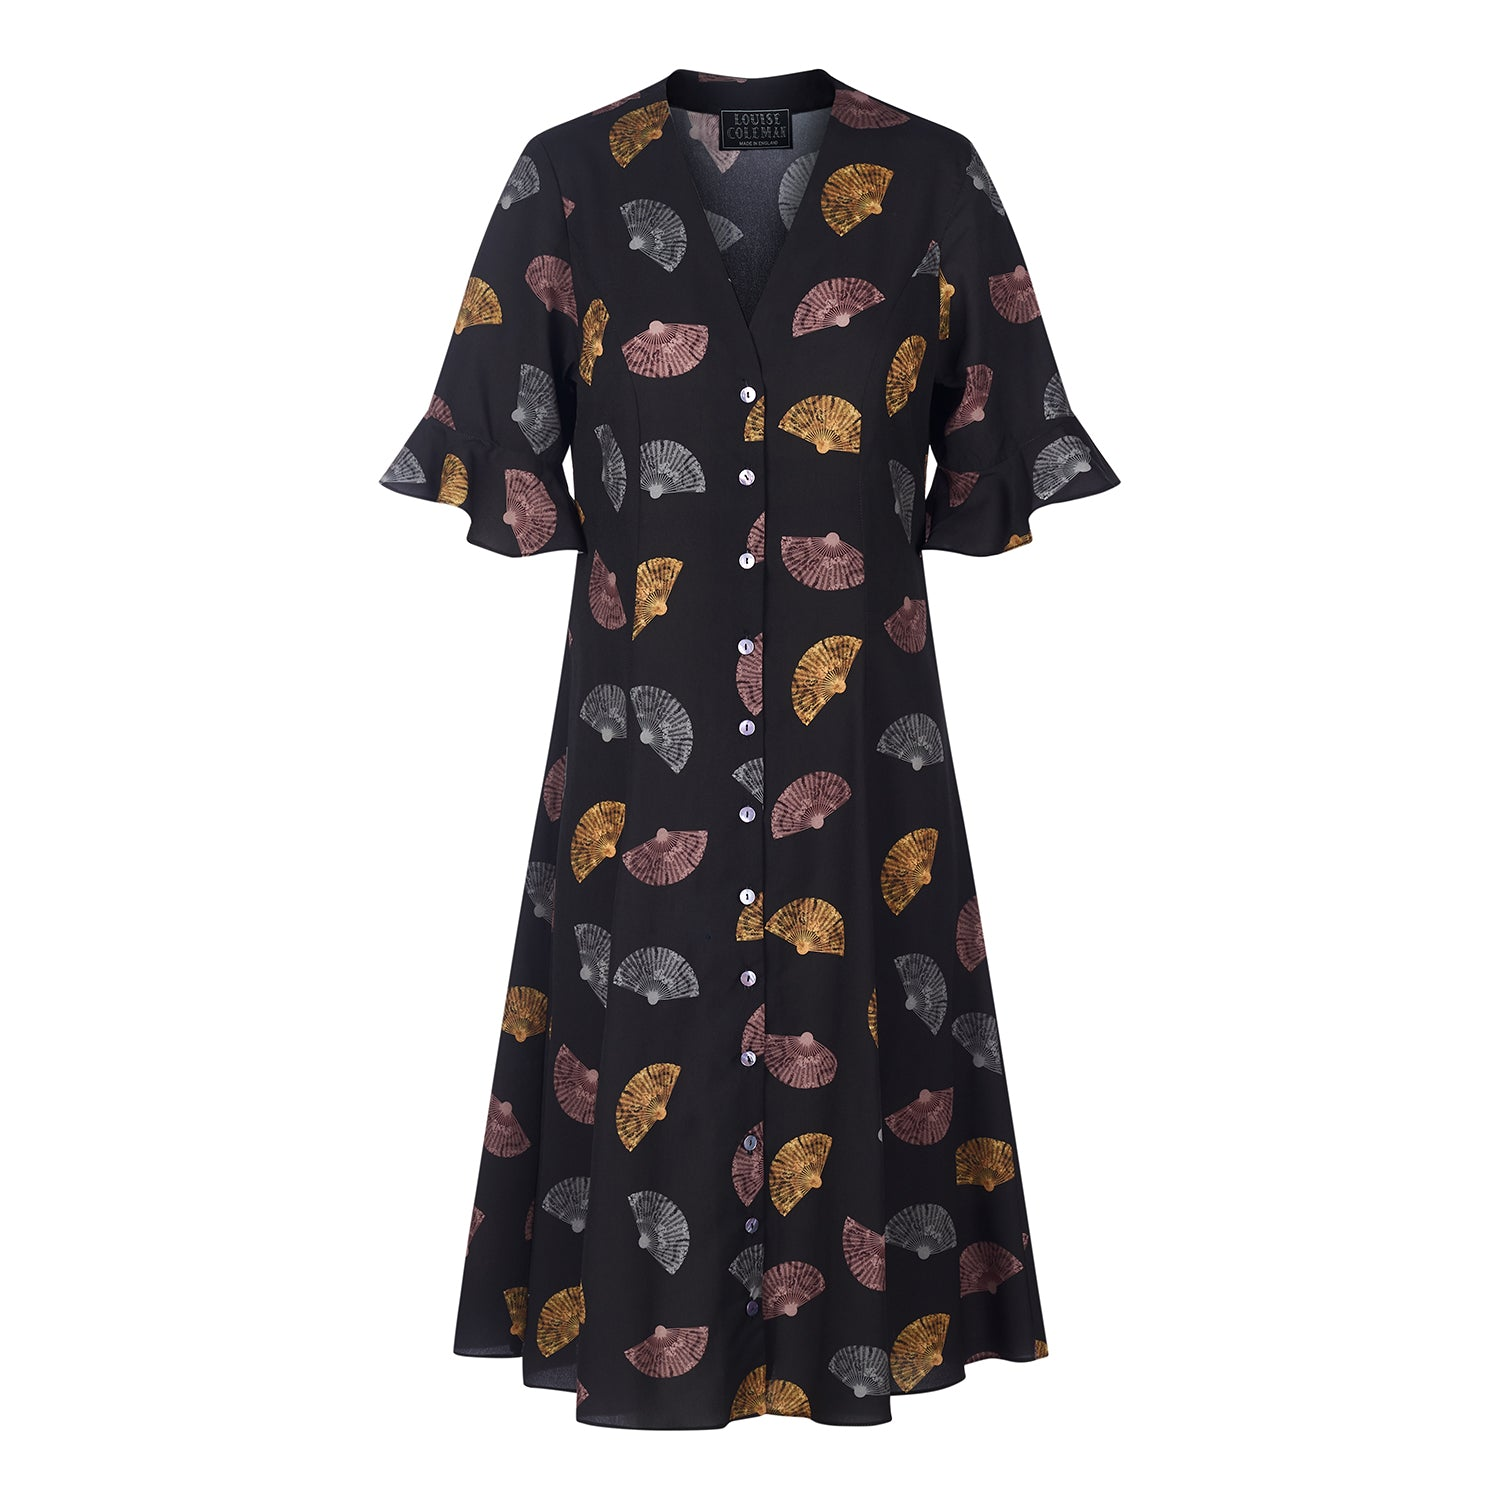 Kanazawa fan print button front mini dress by Louise Coleman.